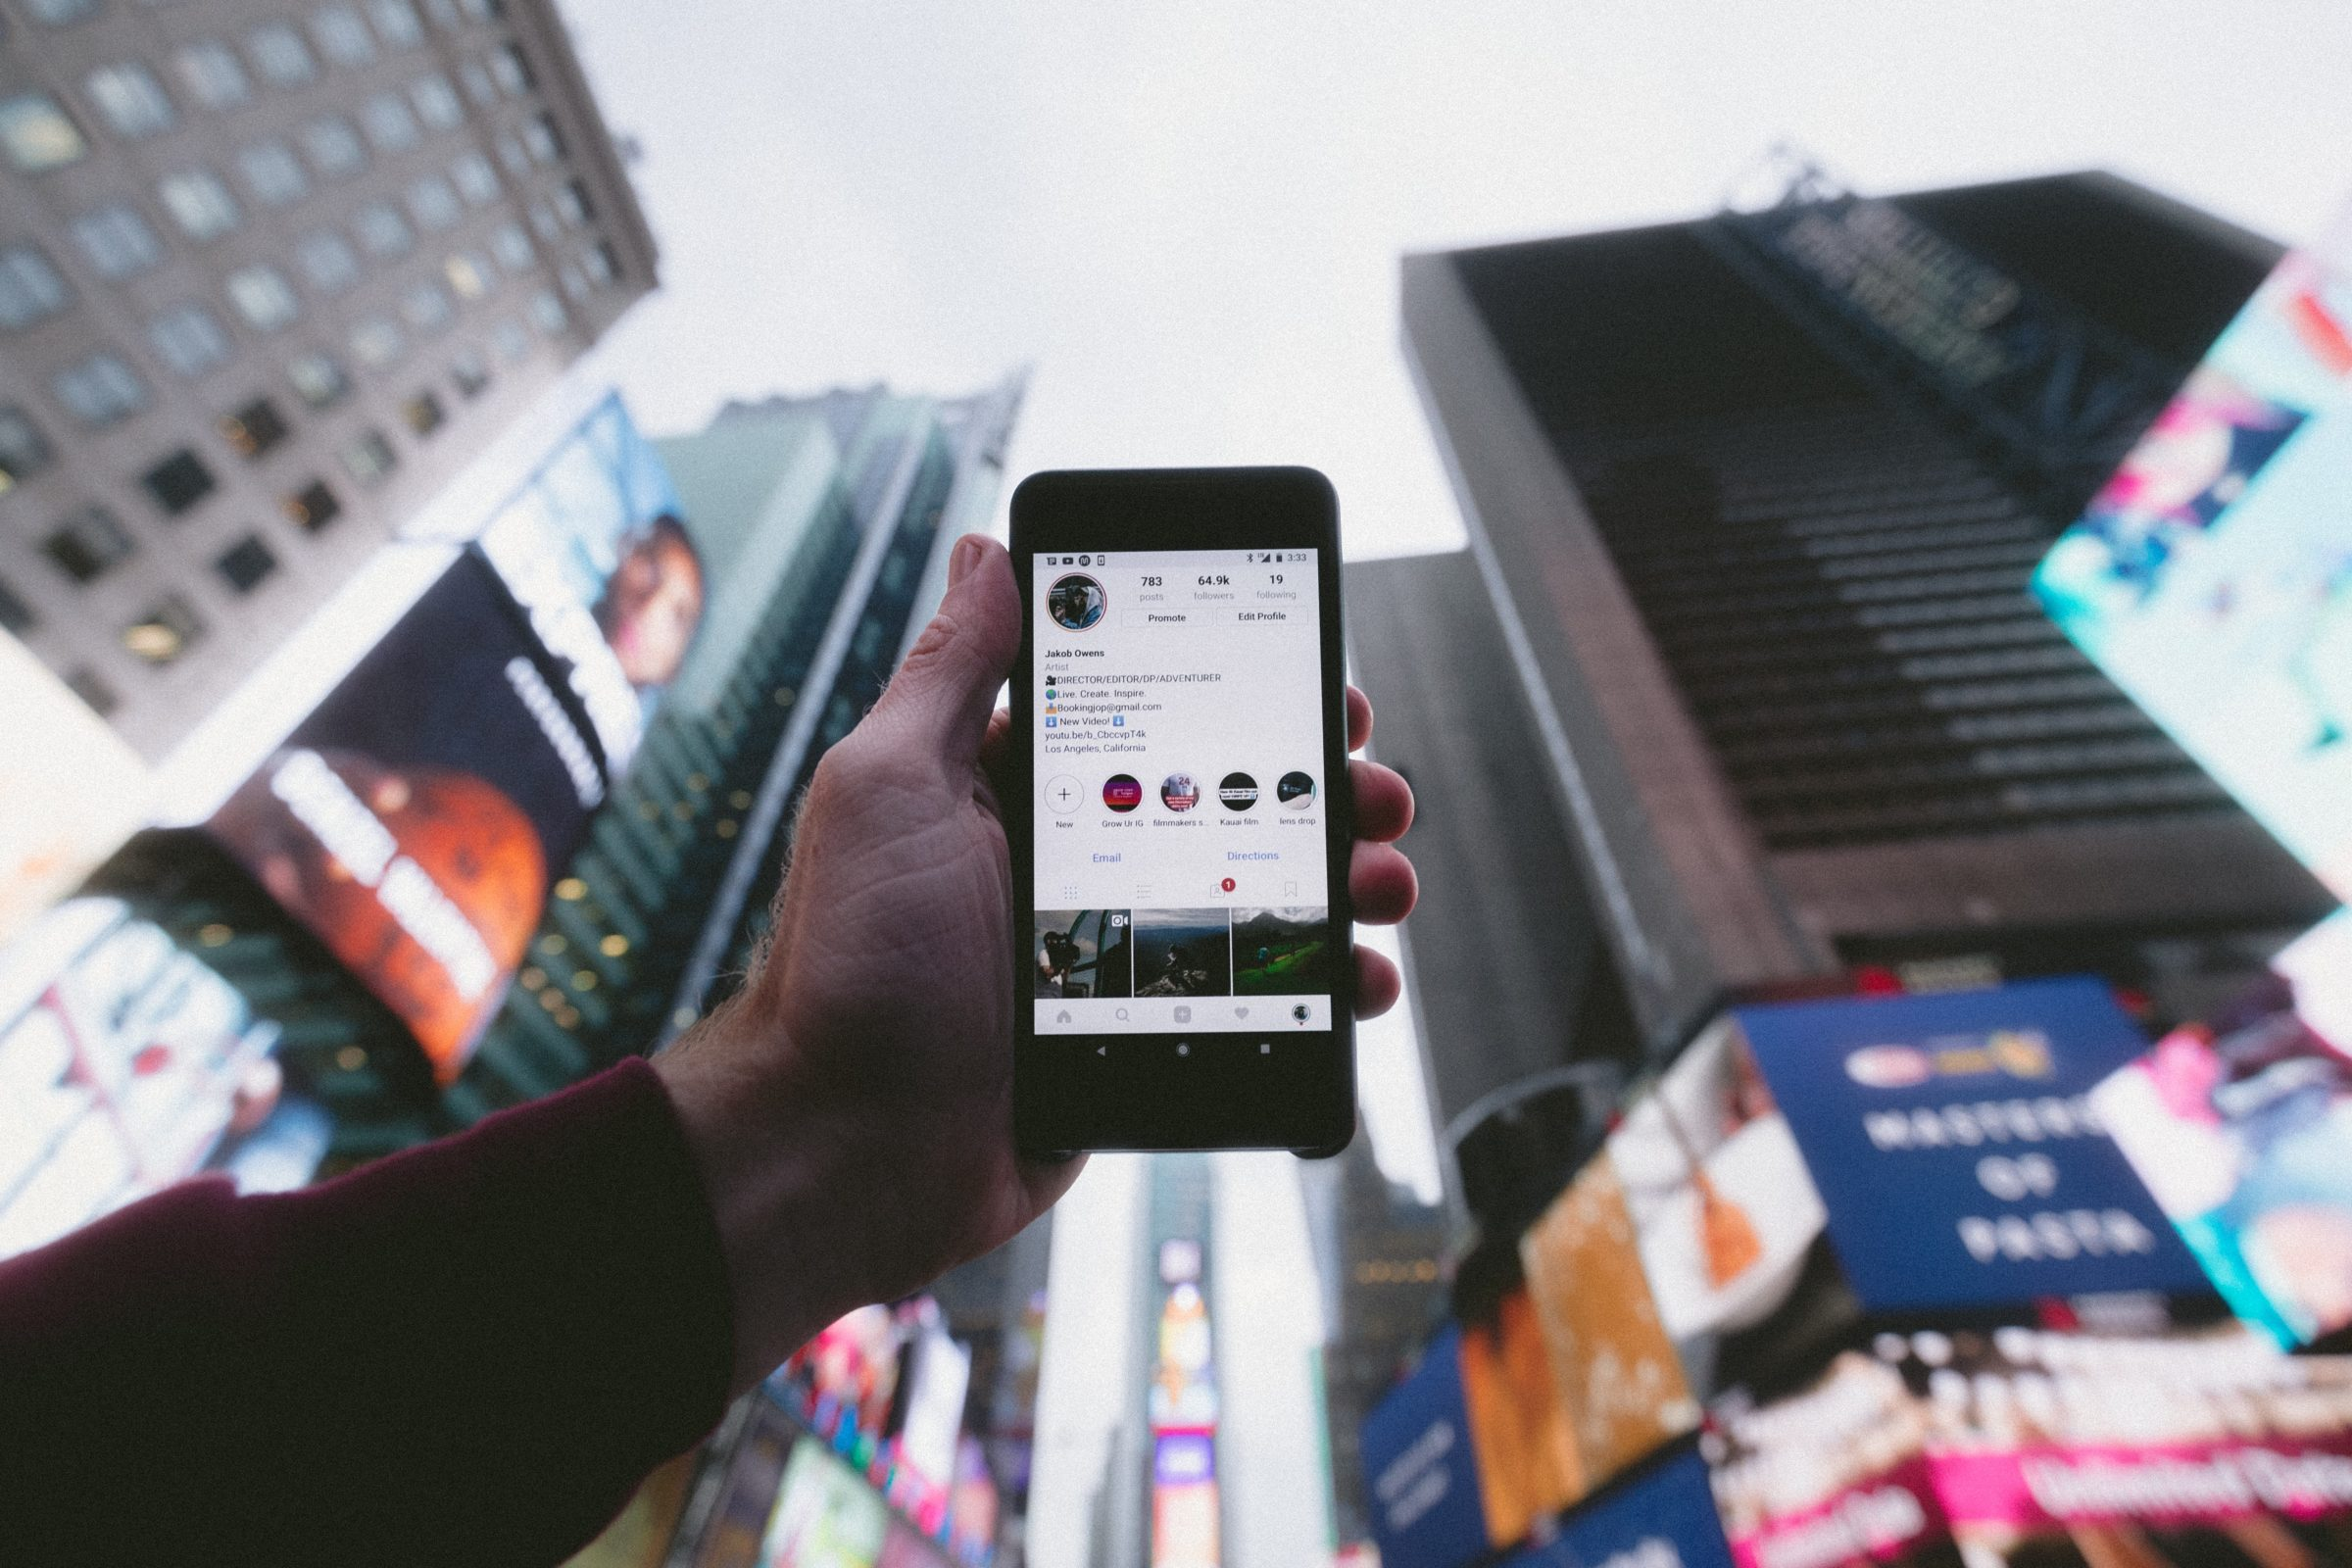 http://Person%20holding%20up%20a%20phone%20in%20front%20of%20city%20buildings